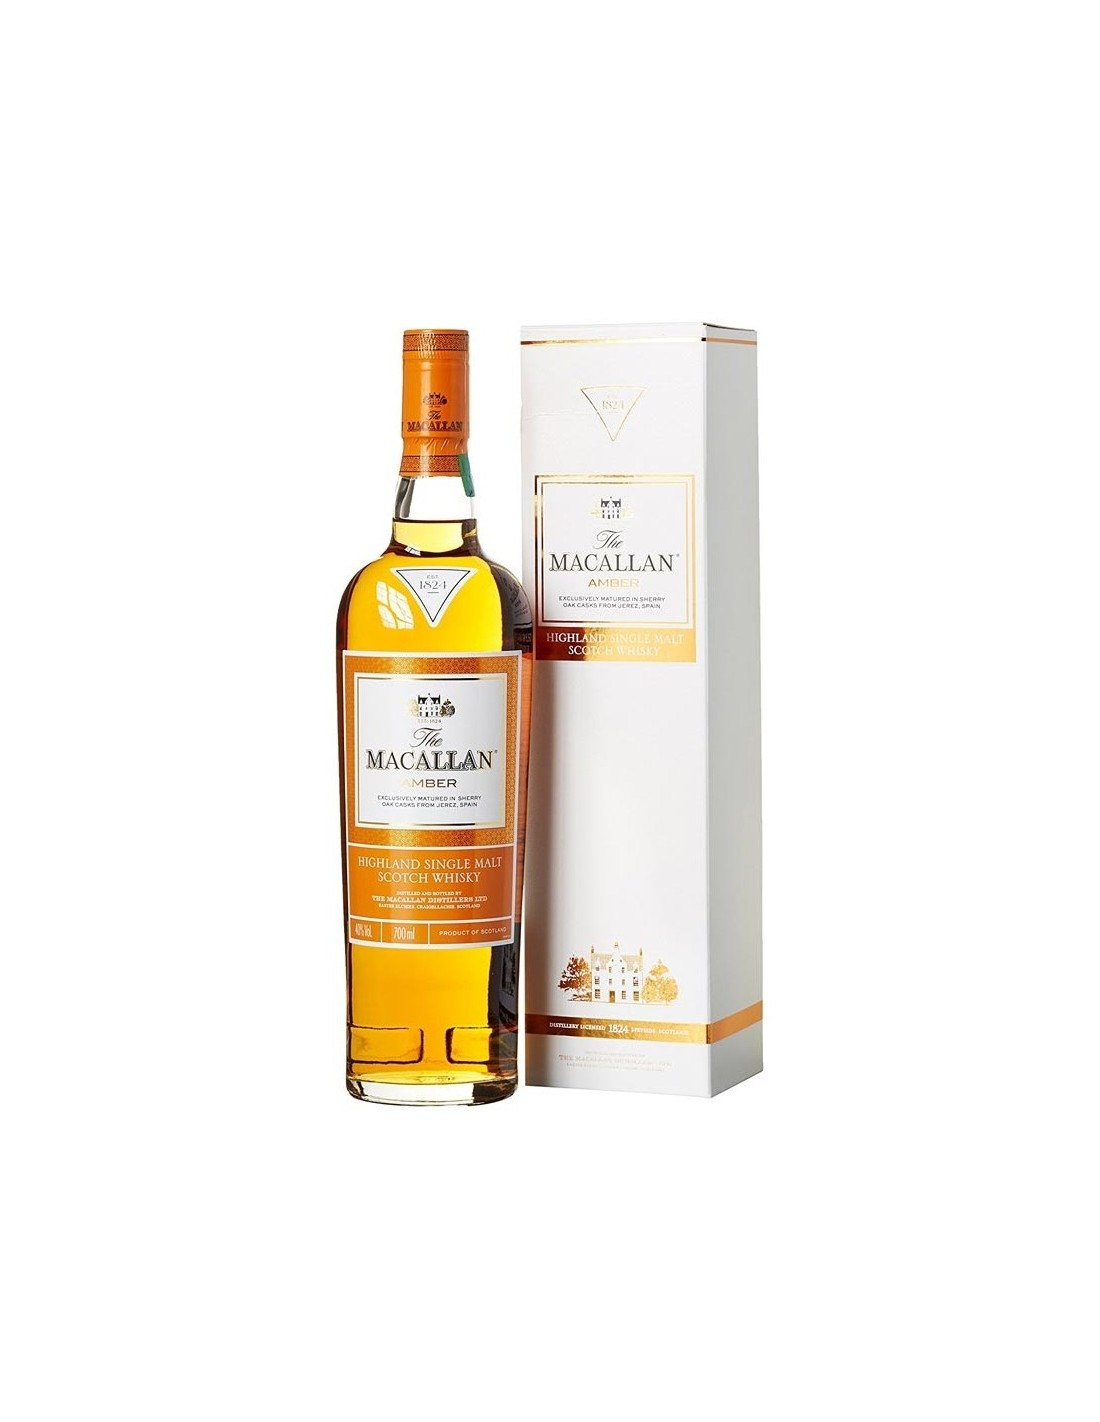 Whisky Macallan Amber, 40% alc., 0.7L, Scotia